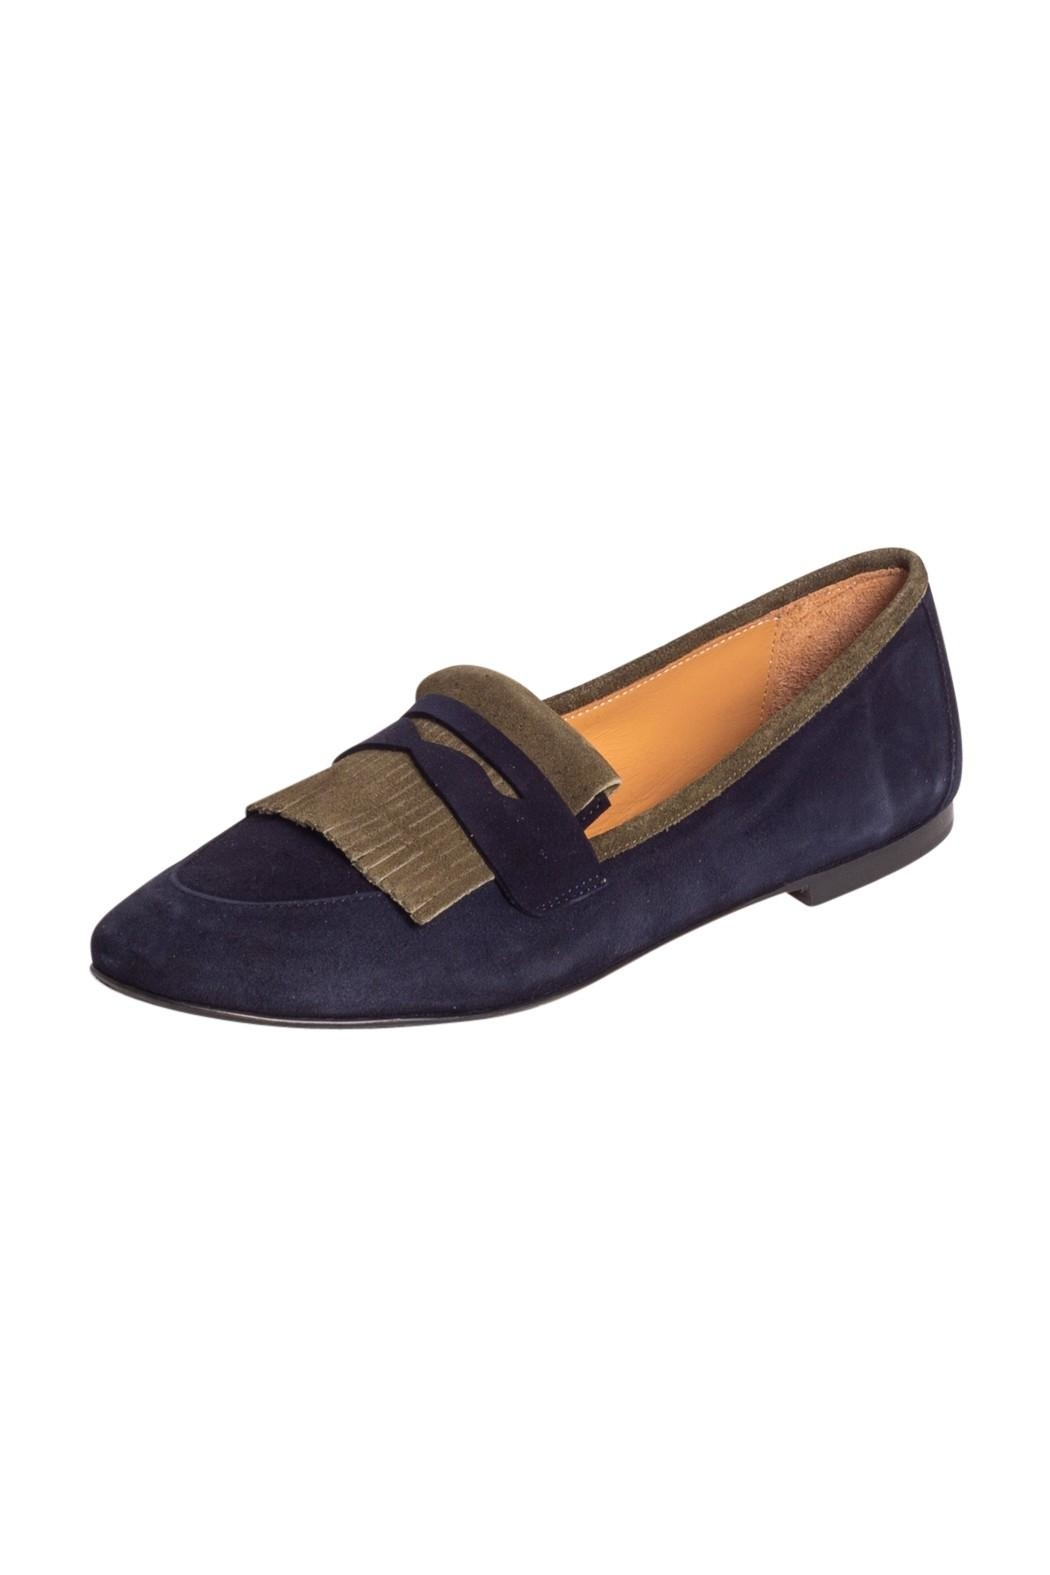 Pascucci Two-Tone Suede Loafer - Front Full Image